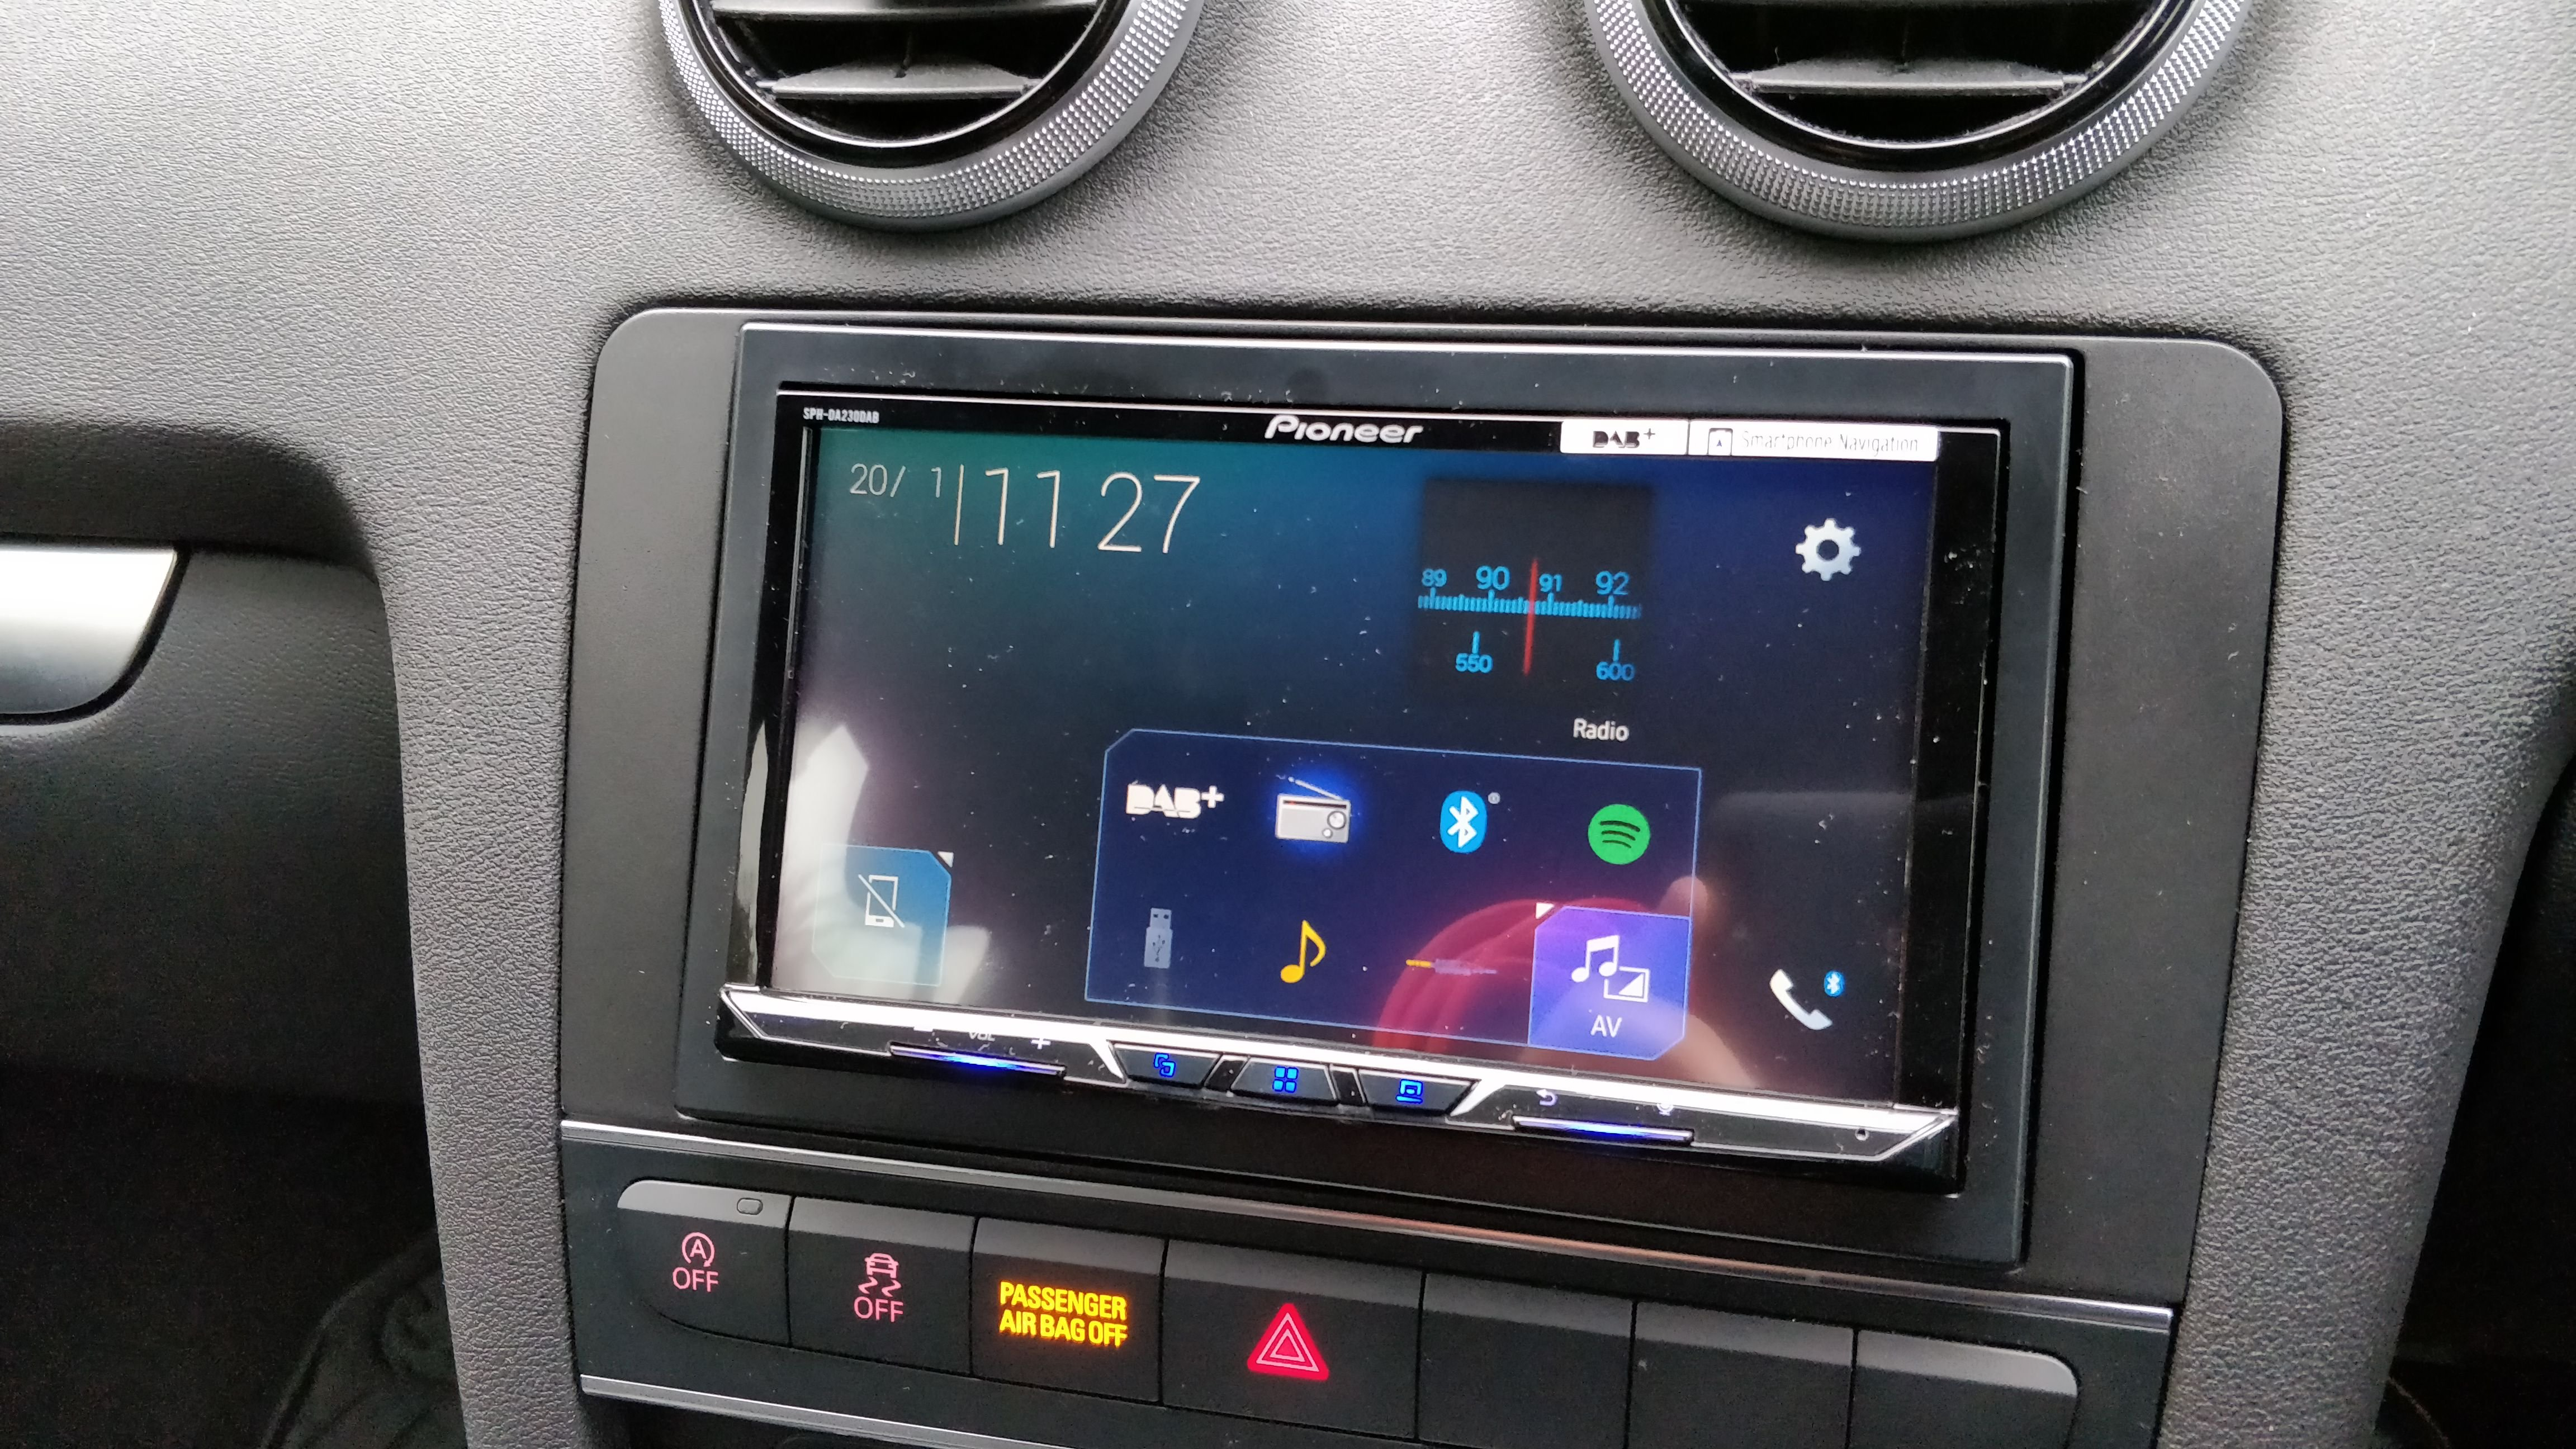 Pioneer CarPlay Headunit, has anyone got one fitted yet